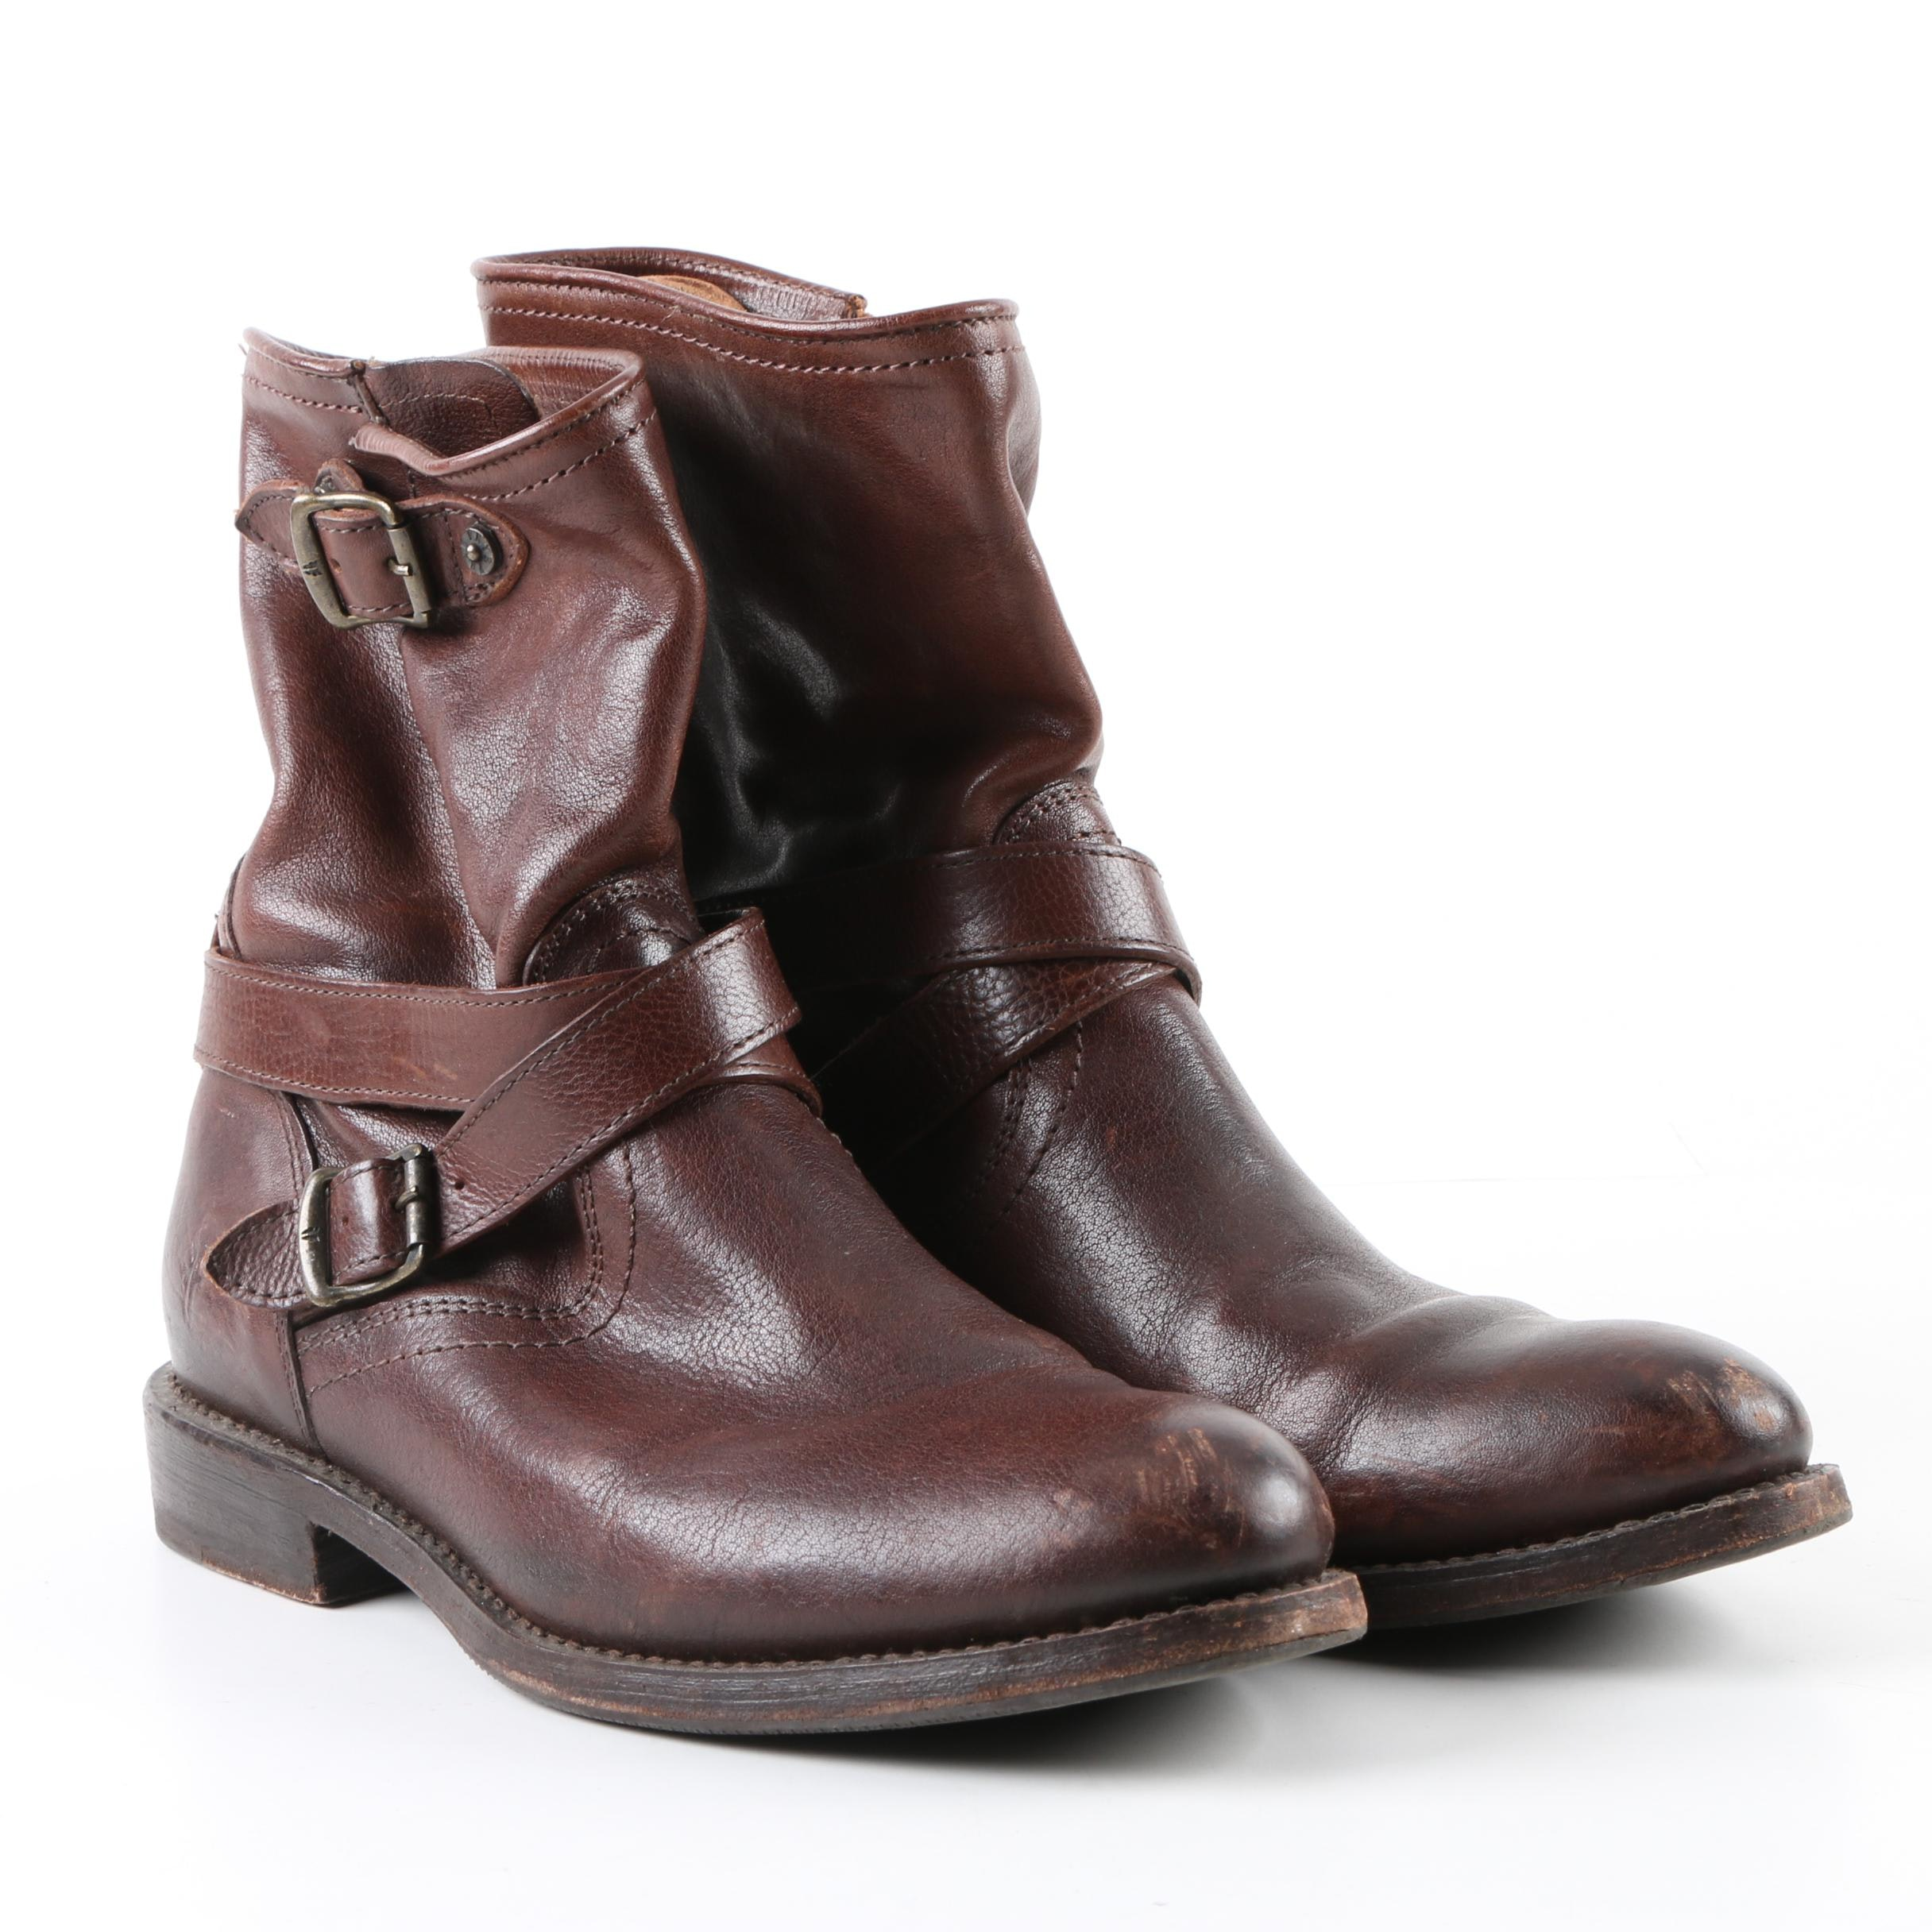 Women's Frye Brown Leather Boots